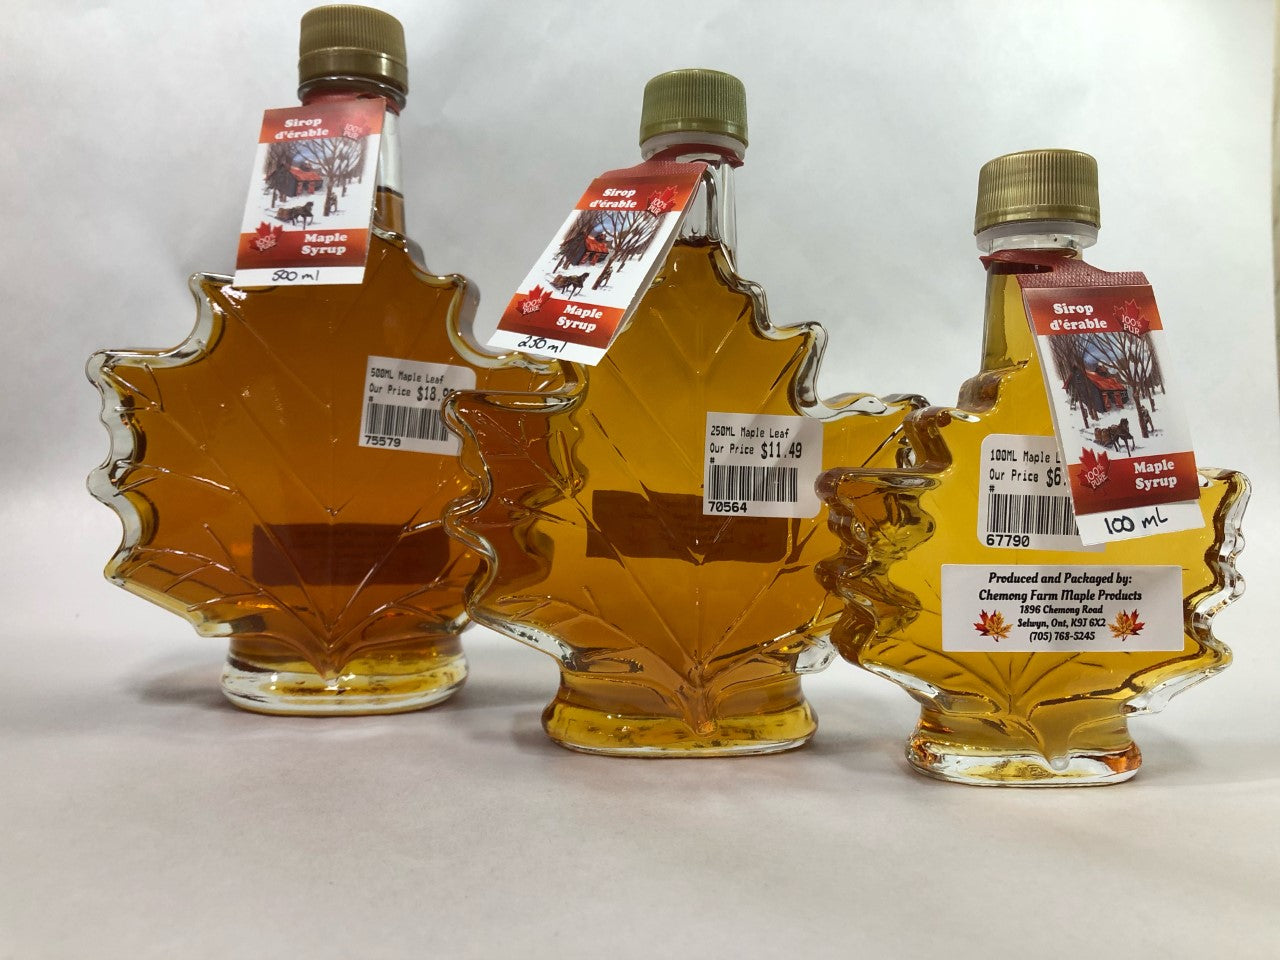 Assorted Maple Syrup - Leaf